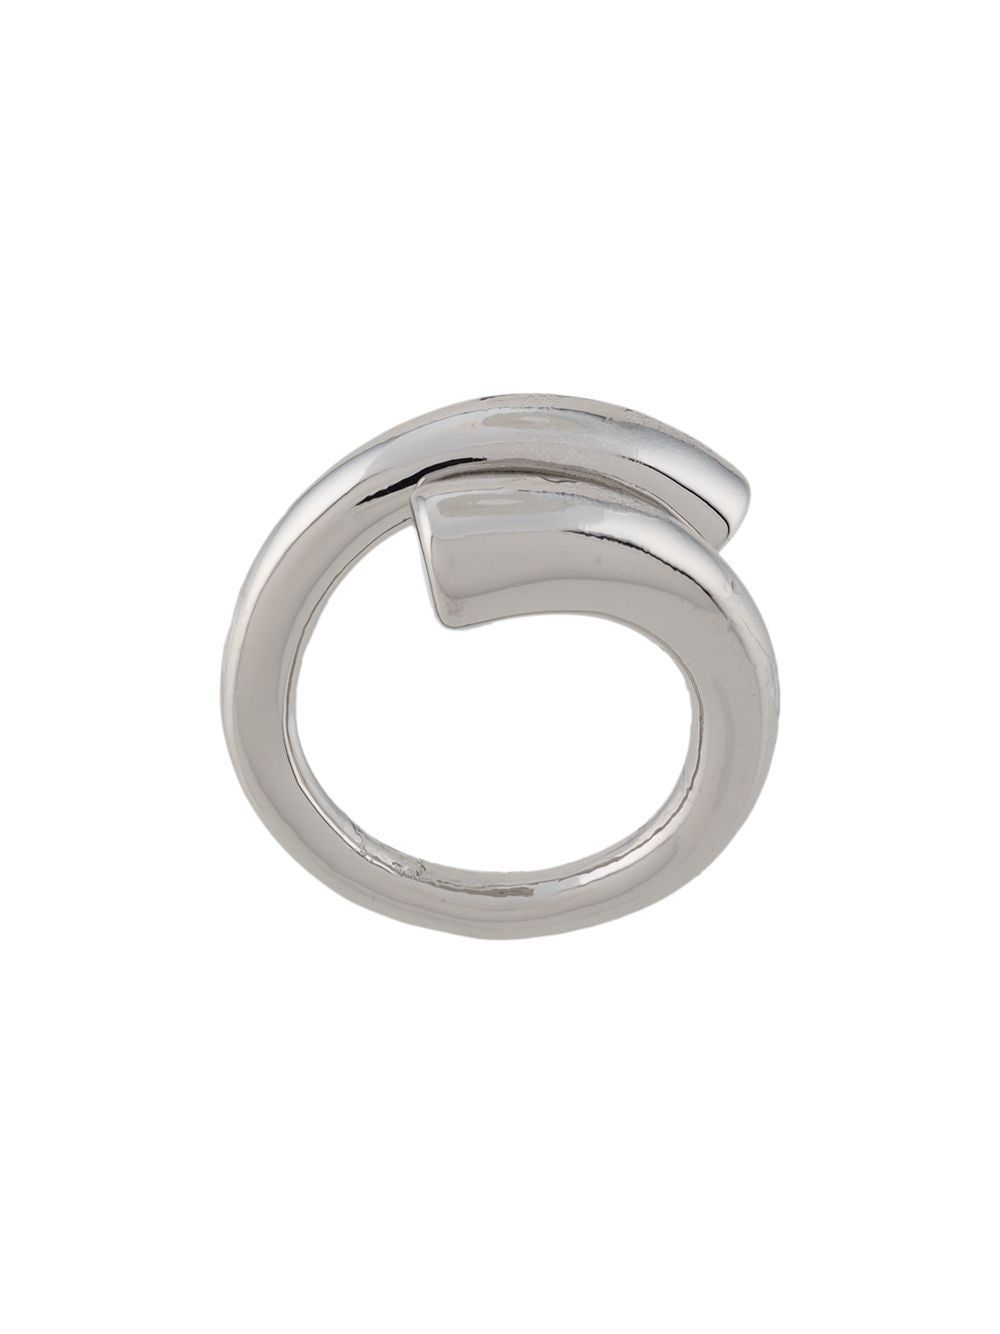 FEDERICA TOSI WOMEN'S FT0112RINGTUBESILVER SILVER METAL RING